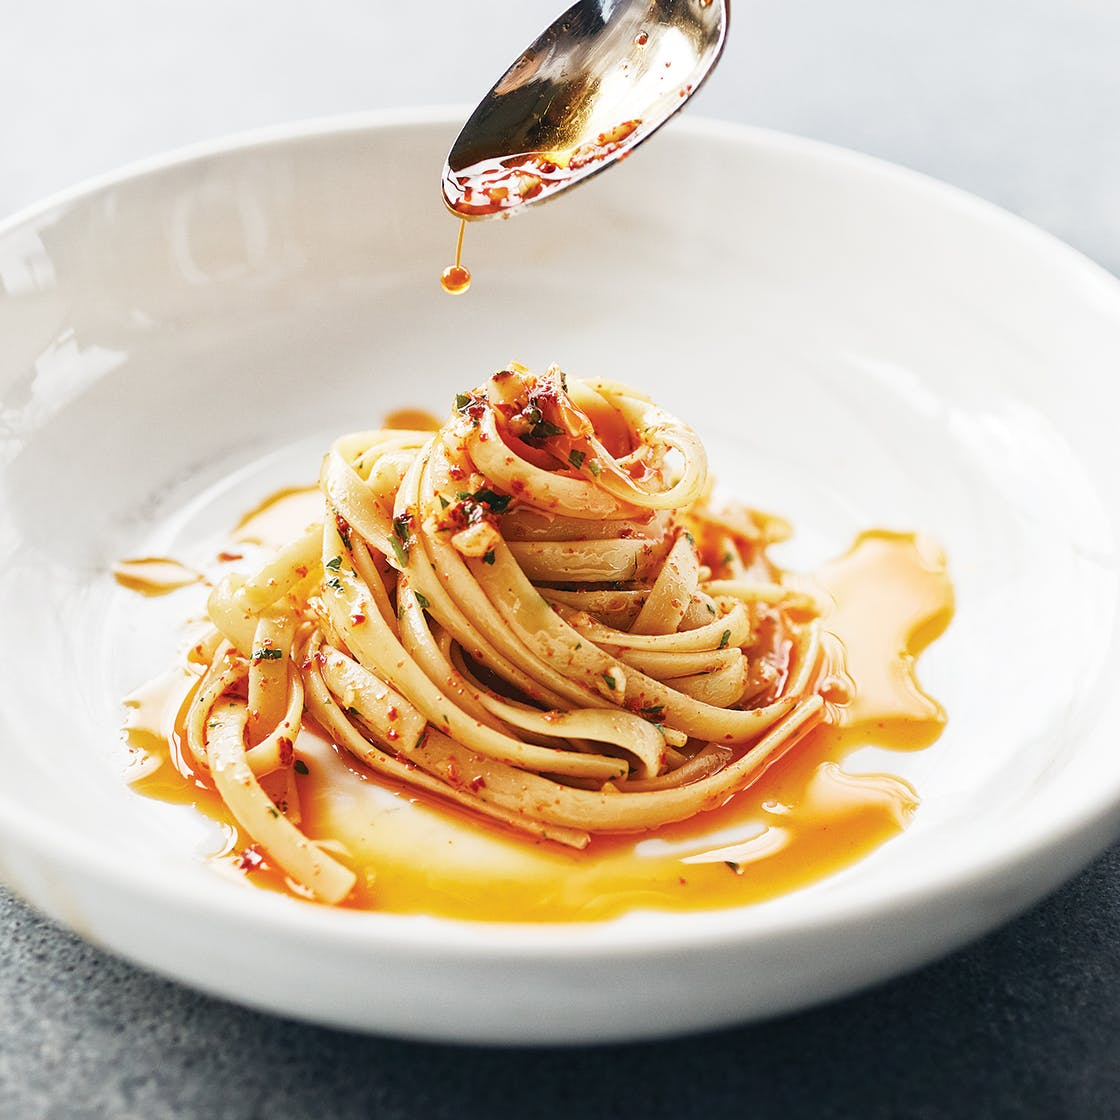 Tagliatelle with red pepper flakes in Texas olive oil.